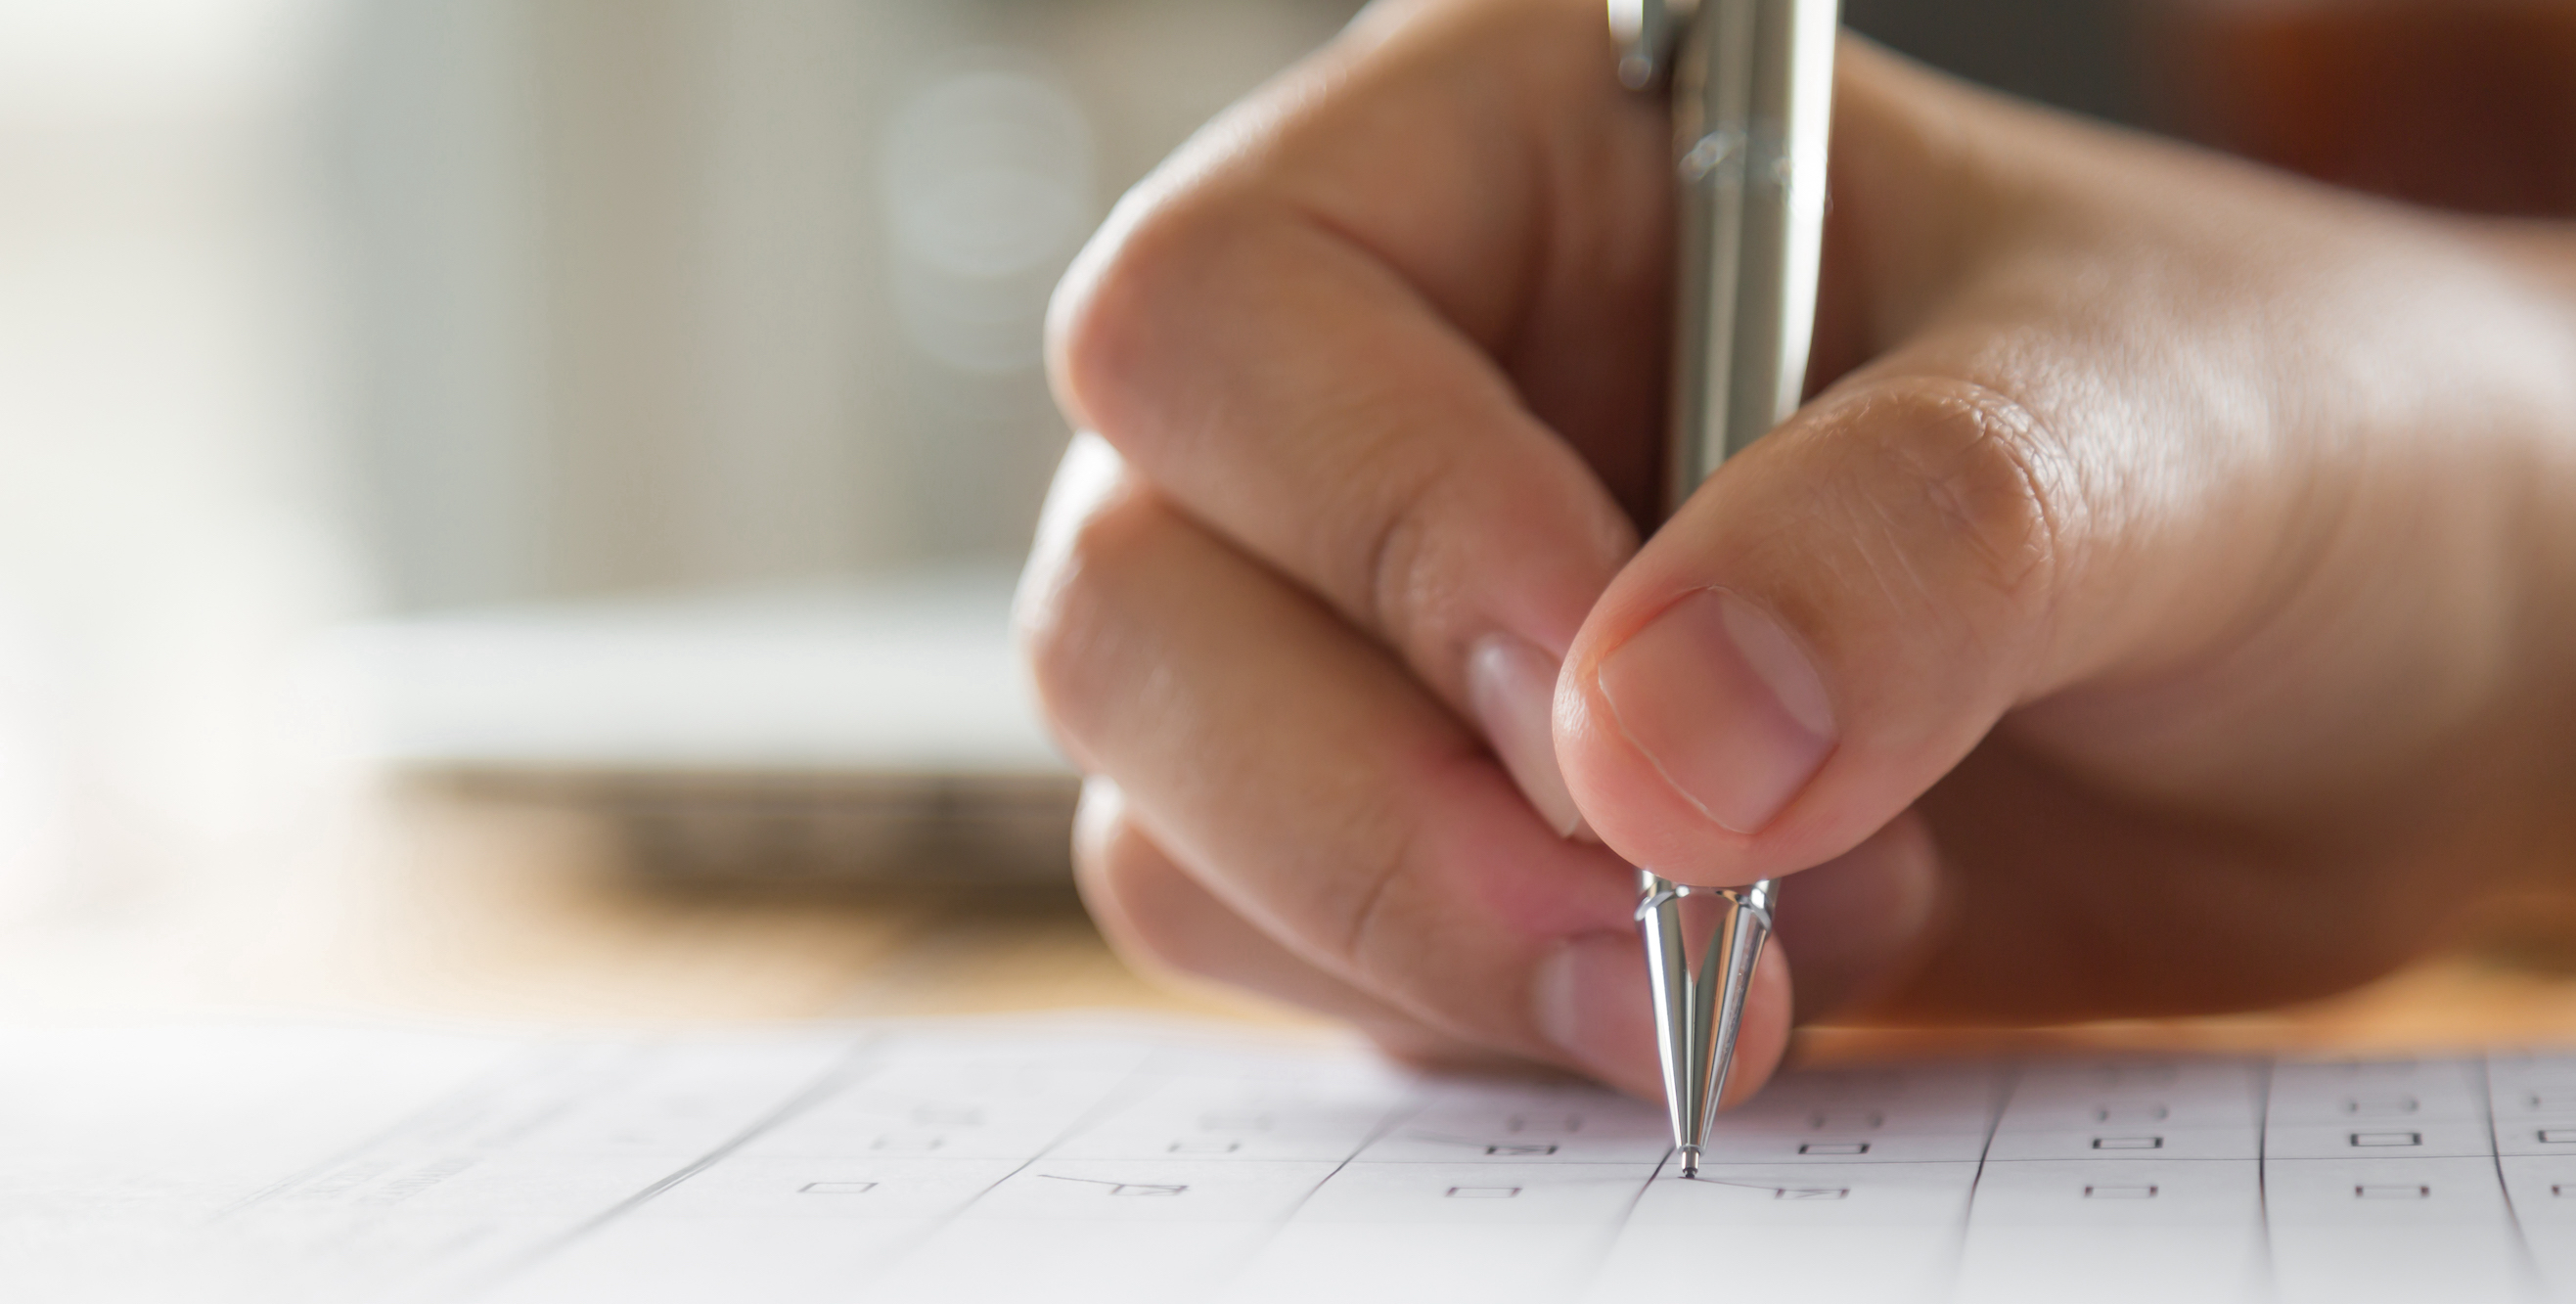 GCSE and A-levels: exam board grade guidance releases